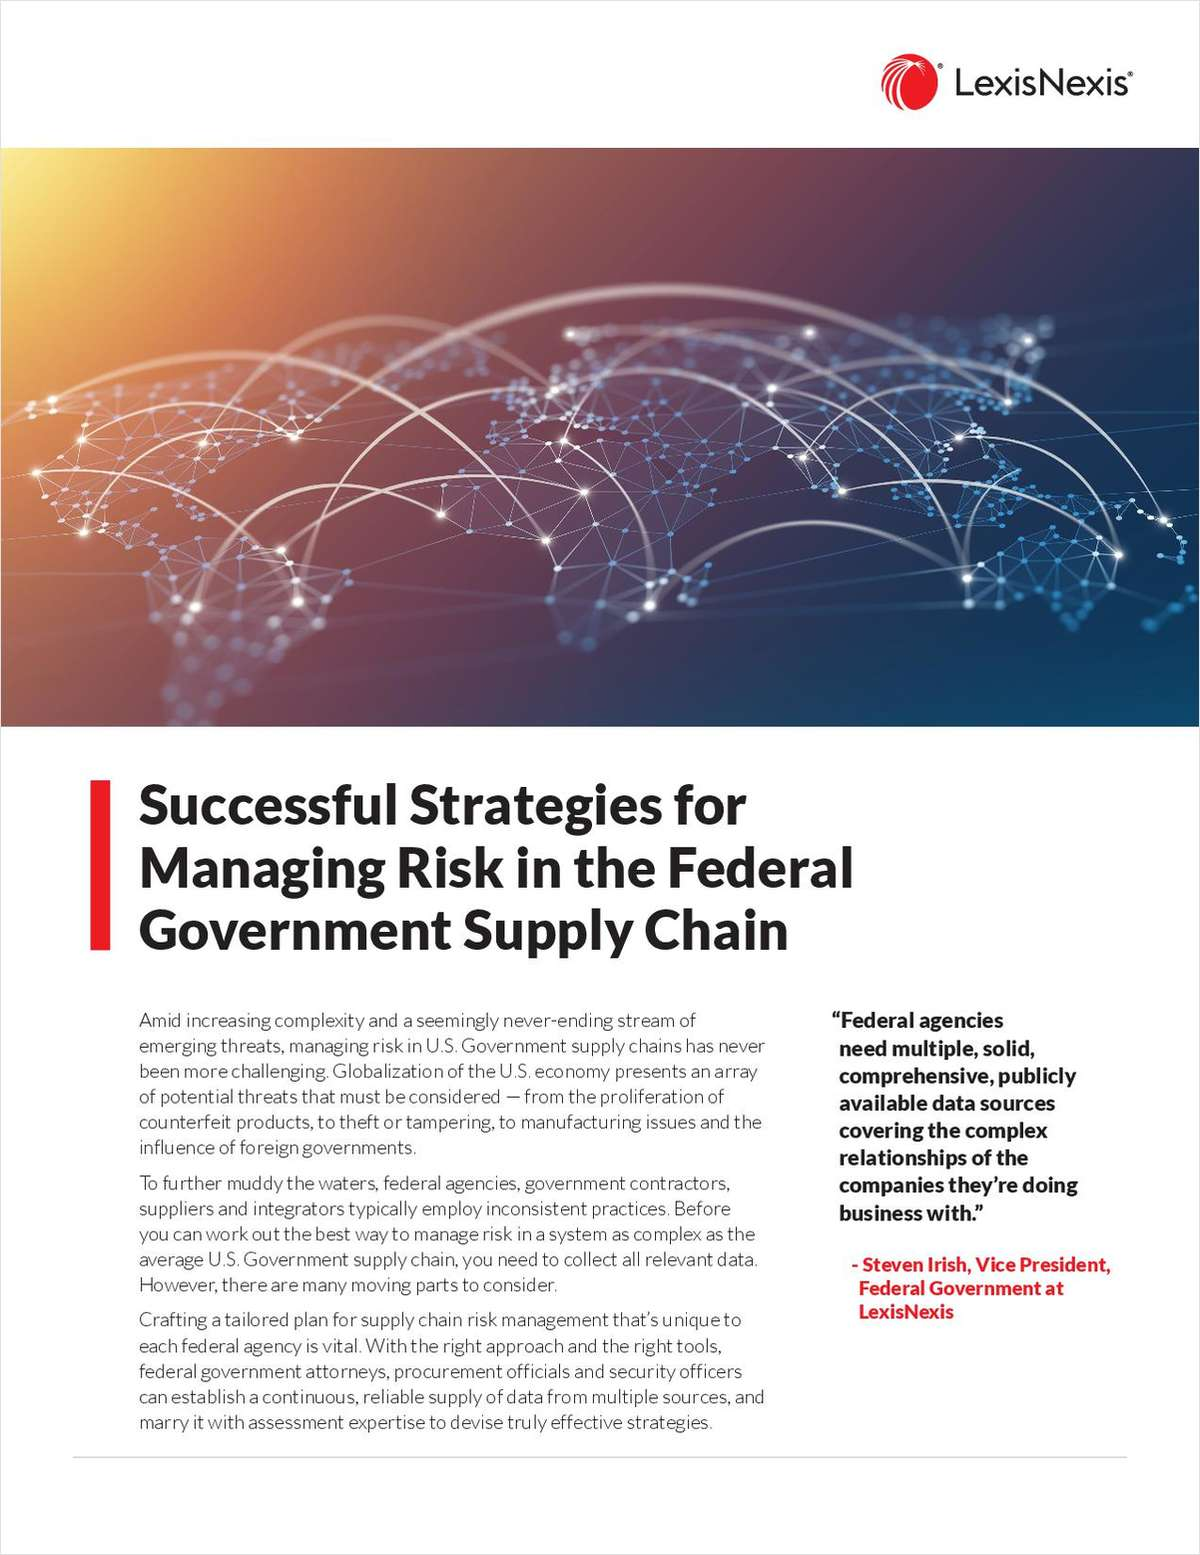 Successful Strategies for Managing Risk in the Federal Government Supply Chain